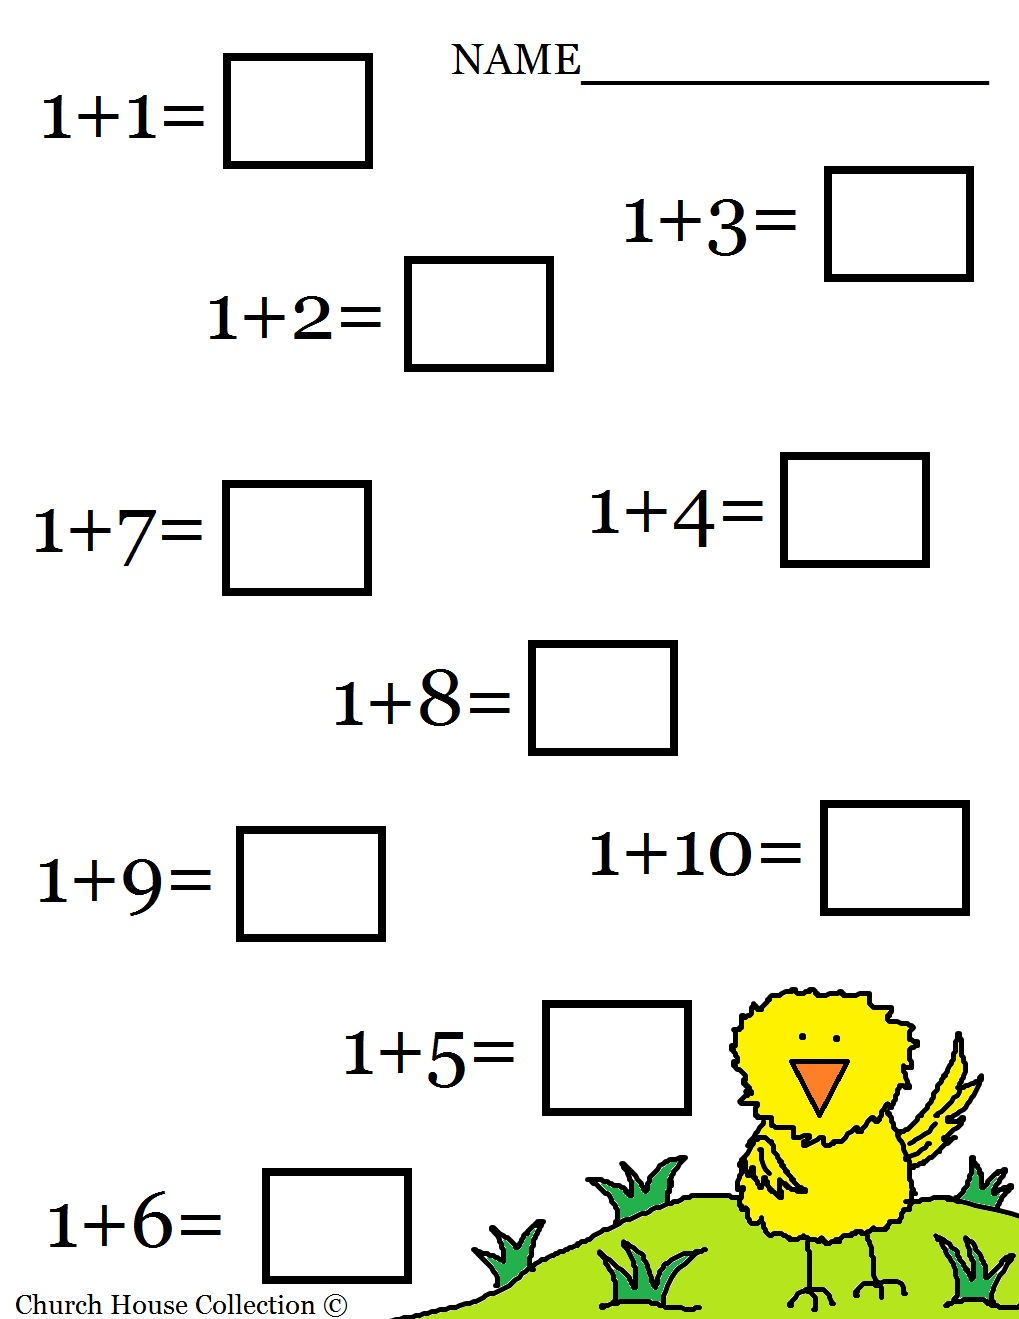 Worksheet Math Worksheets For Elementary Students math worksheets for elementary students abitlikethis easter addition worksheet kids in kindergarten or elementary